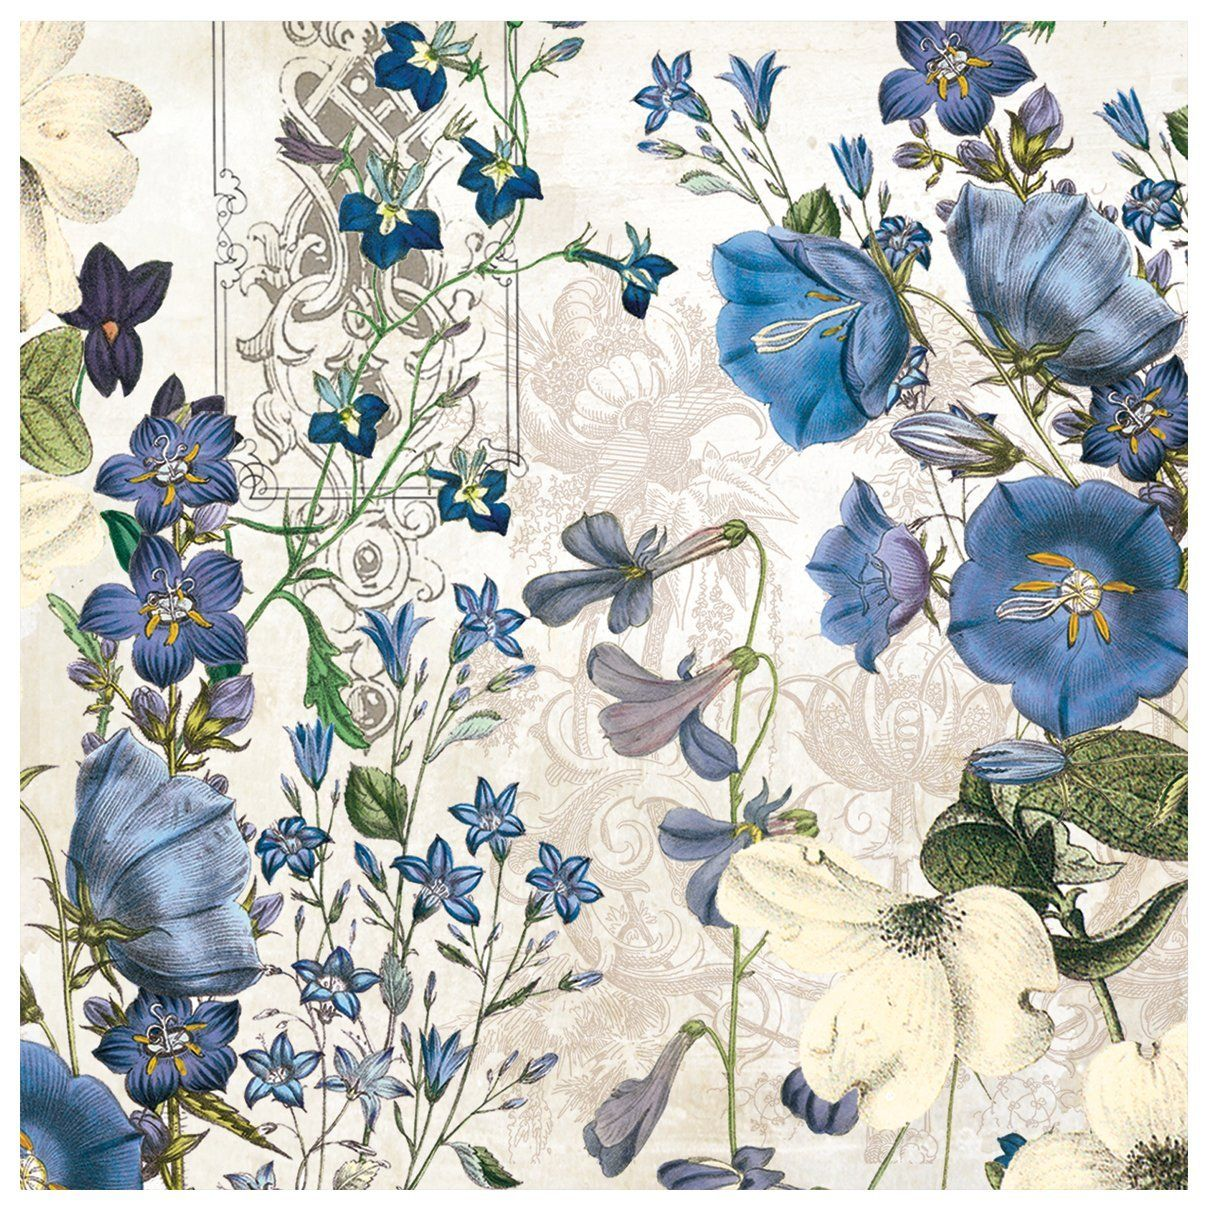 Amazon.com: Michel Design Works 20 Count 3-Ply Paper Lunch Napkins, Blue Meadow: Kitchen & Dining